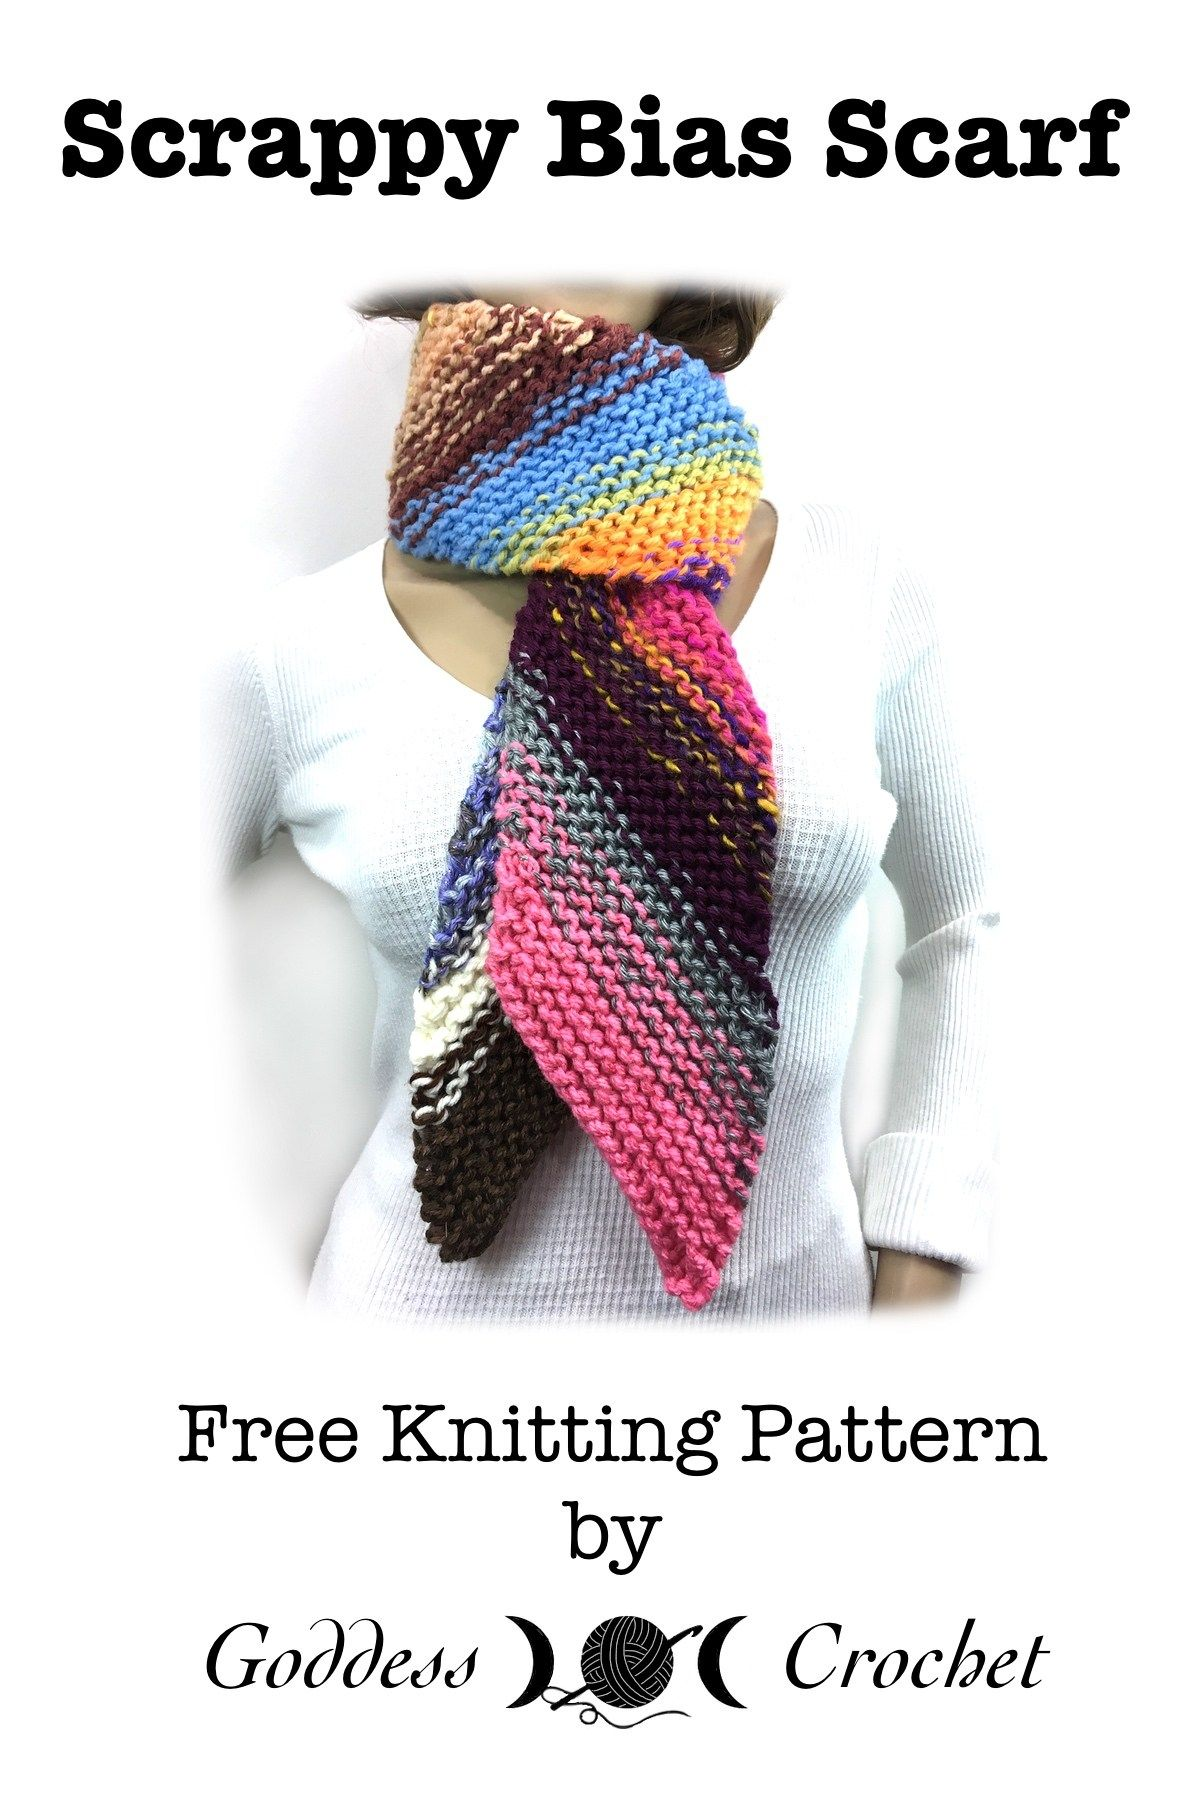 Scrappy Bias Scarf - Free Knitting Pattern | knitting | Pinterest ...